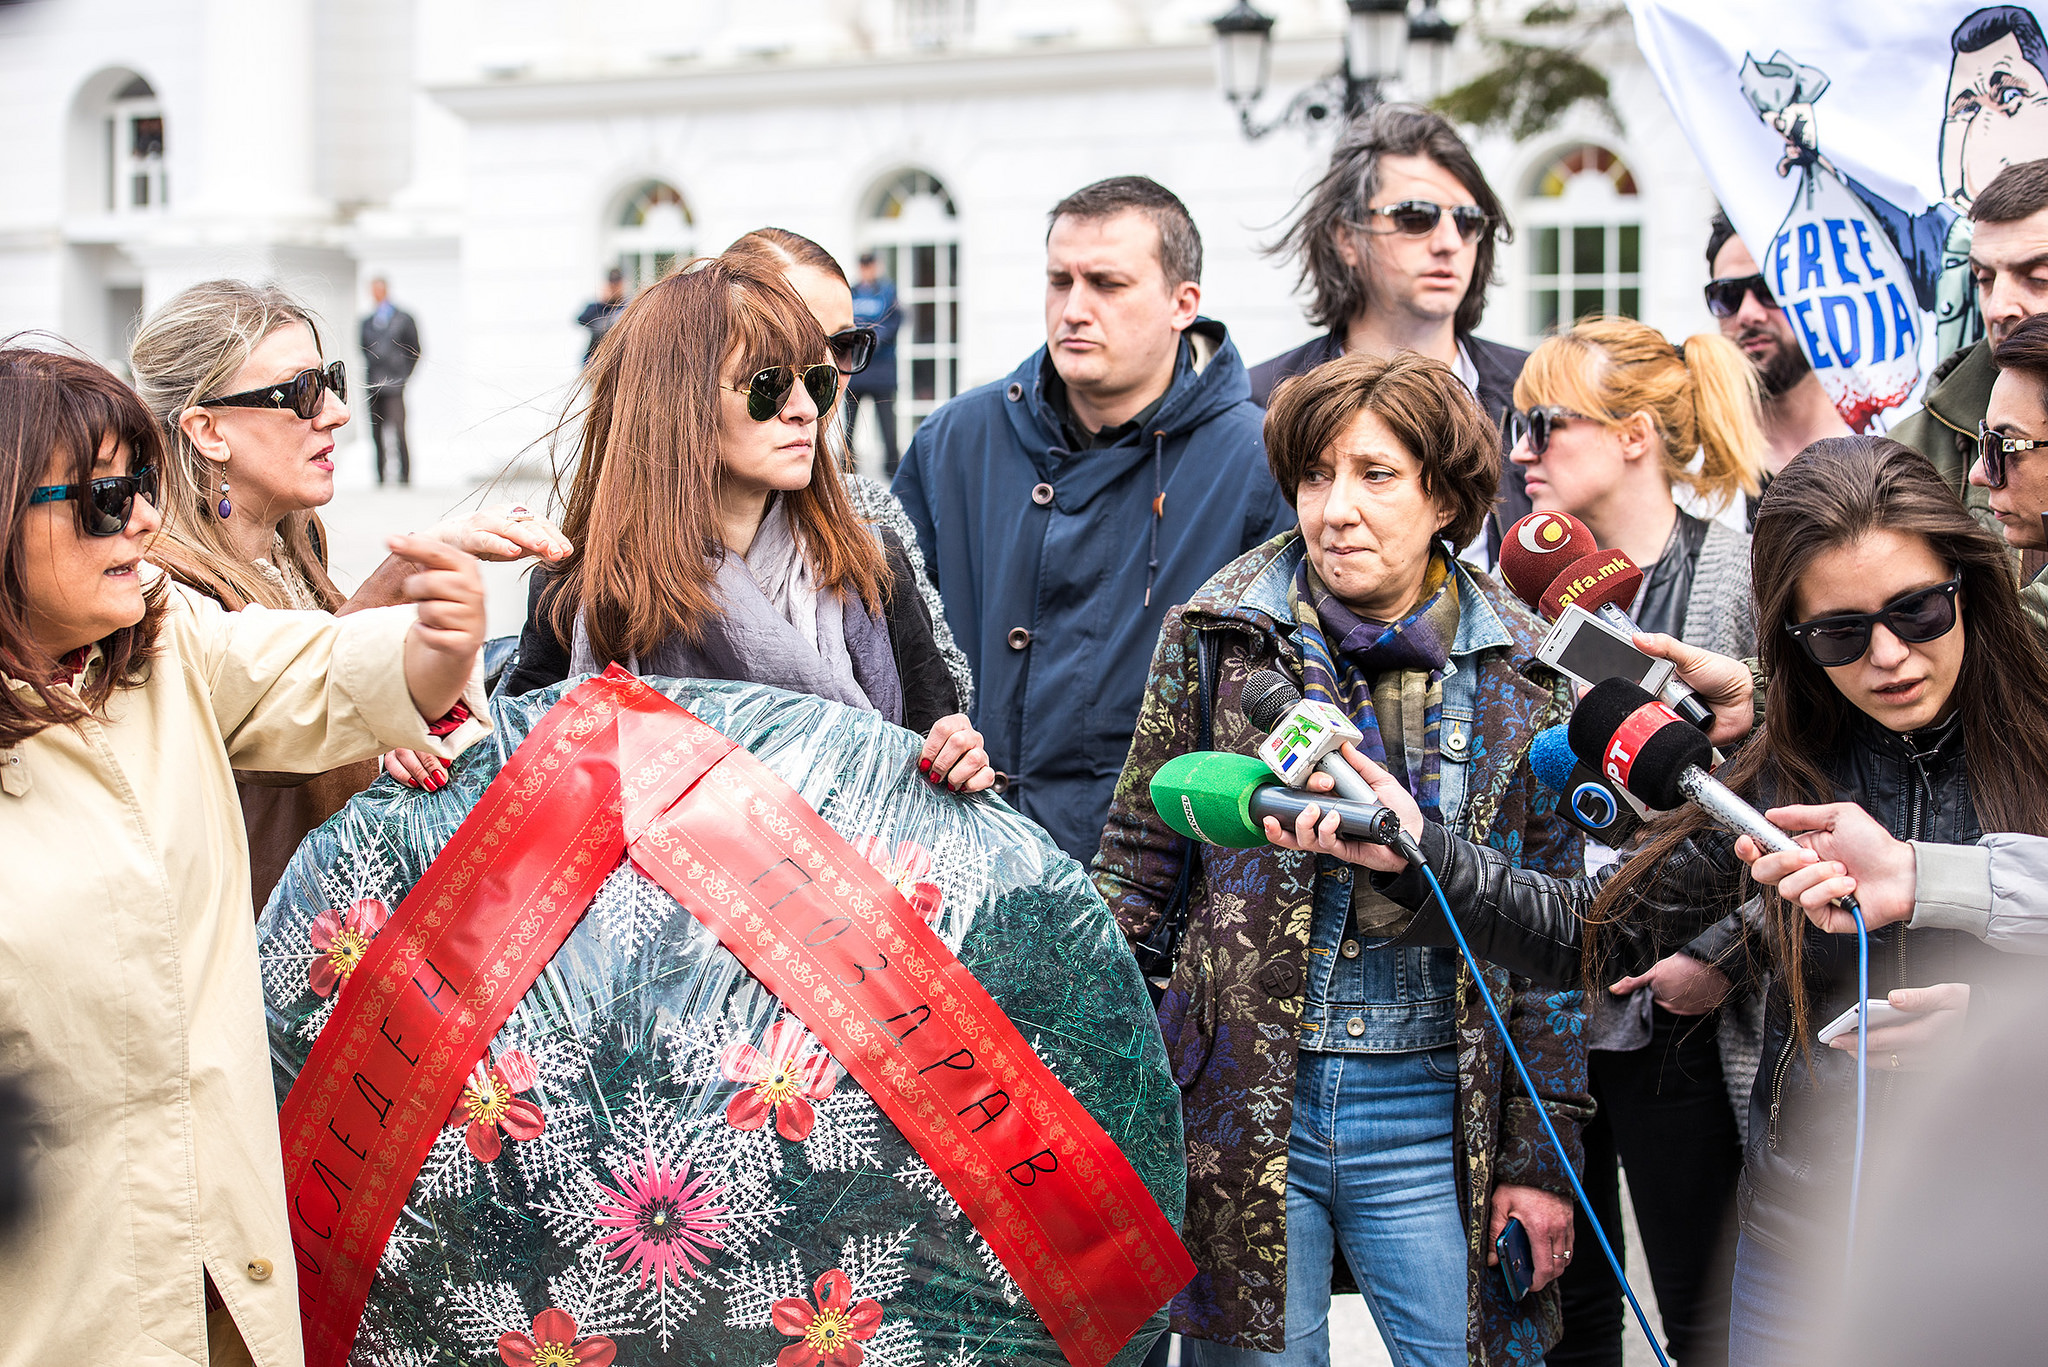 Several journalists spoke at a protest in Skopje about the recent threats directed at journalist Borjan Jovanovski, holding the funeral wreath that had been delivered to his home as a death threat in April 2015. Photo by Vanco Dzambaski, used with permission.